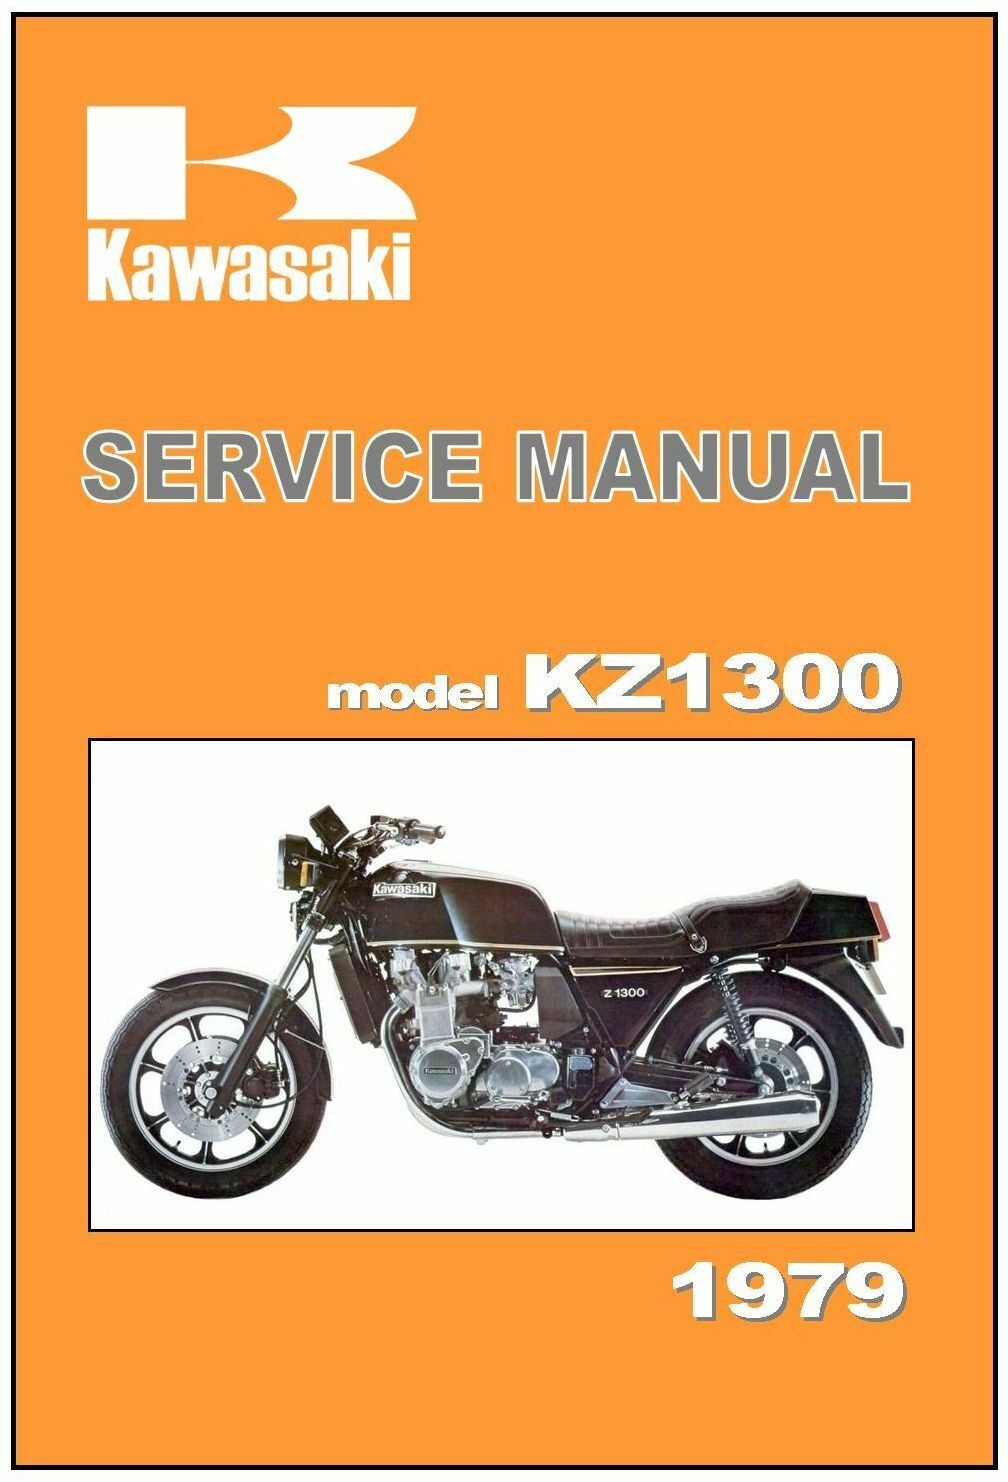 KAWASAKI Workshop Manual KZ1300 Z1300 1979 Maintenance Service and Repair 1  of 5Only 2 available ...